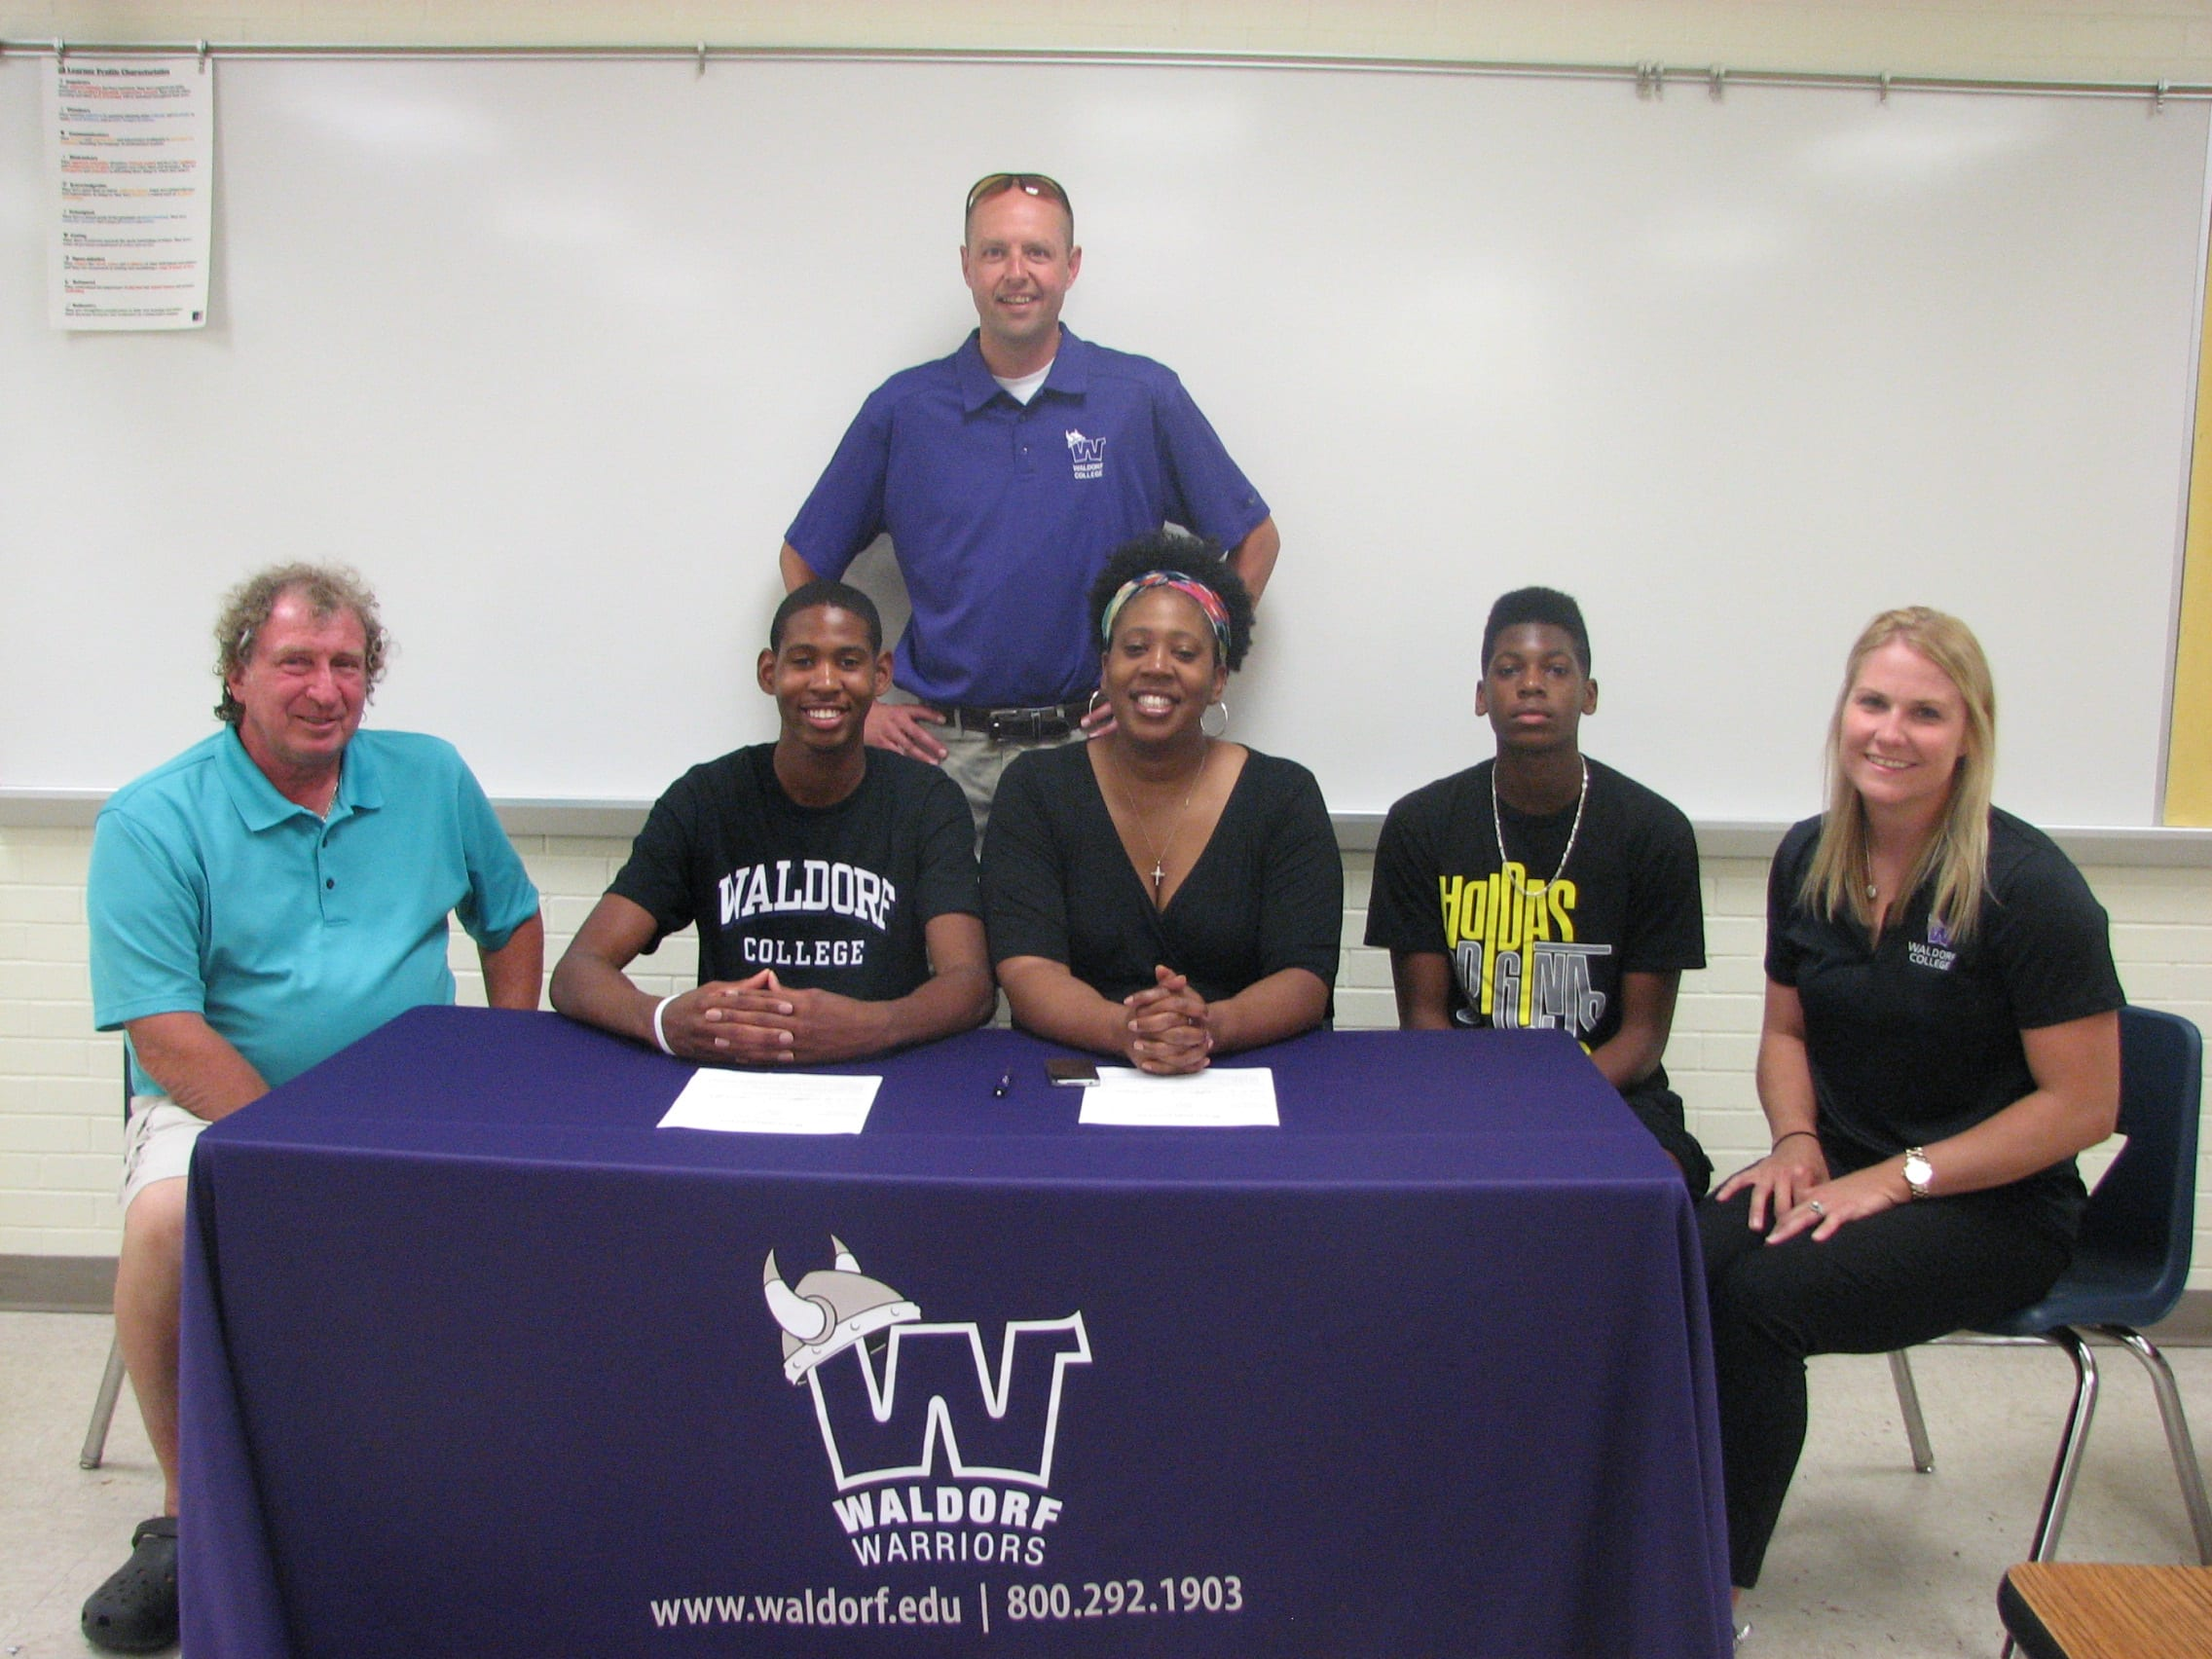 Pictured in back, Waldorf head coach Kendrick Clay. In front, from left, Park Center coach Bruce Smith; Henderson; Henderson's mother, Yvette and brother, Devin, and Waldorf associate head coach Kelsey Olson.